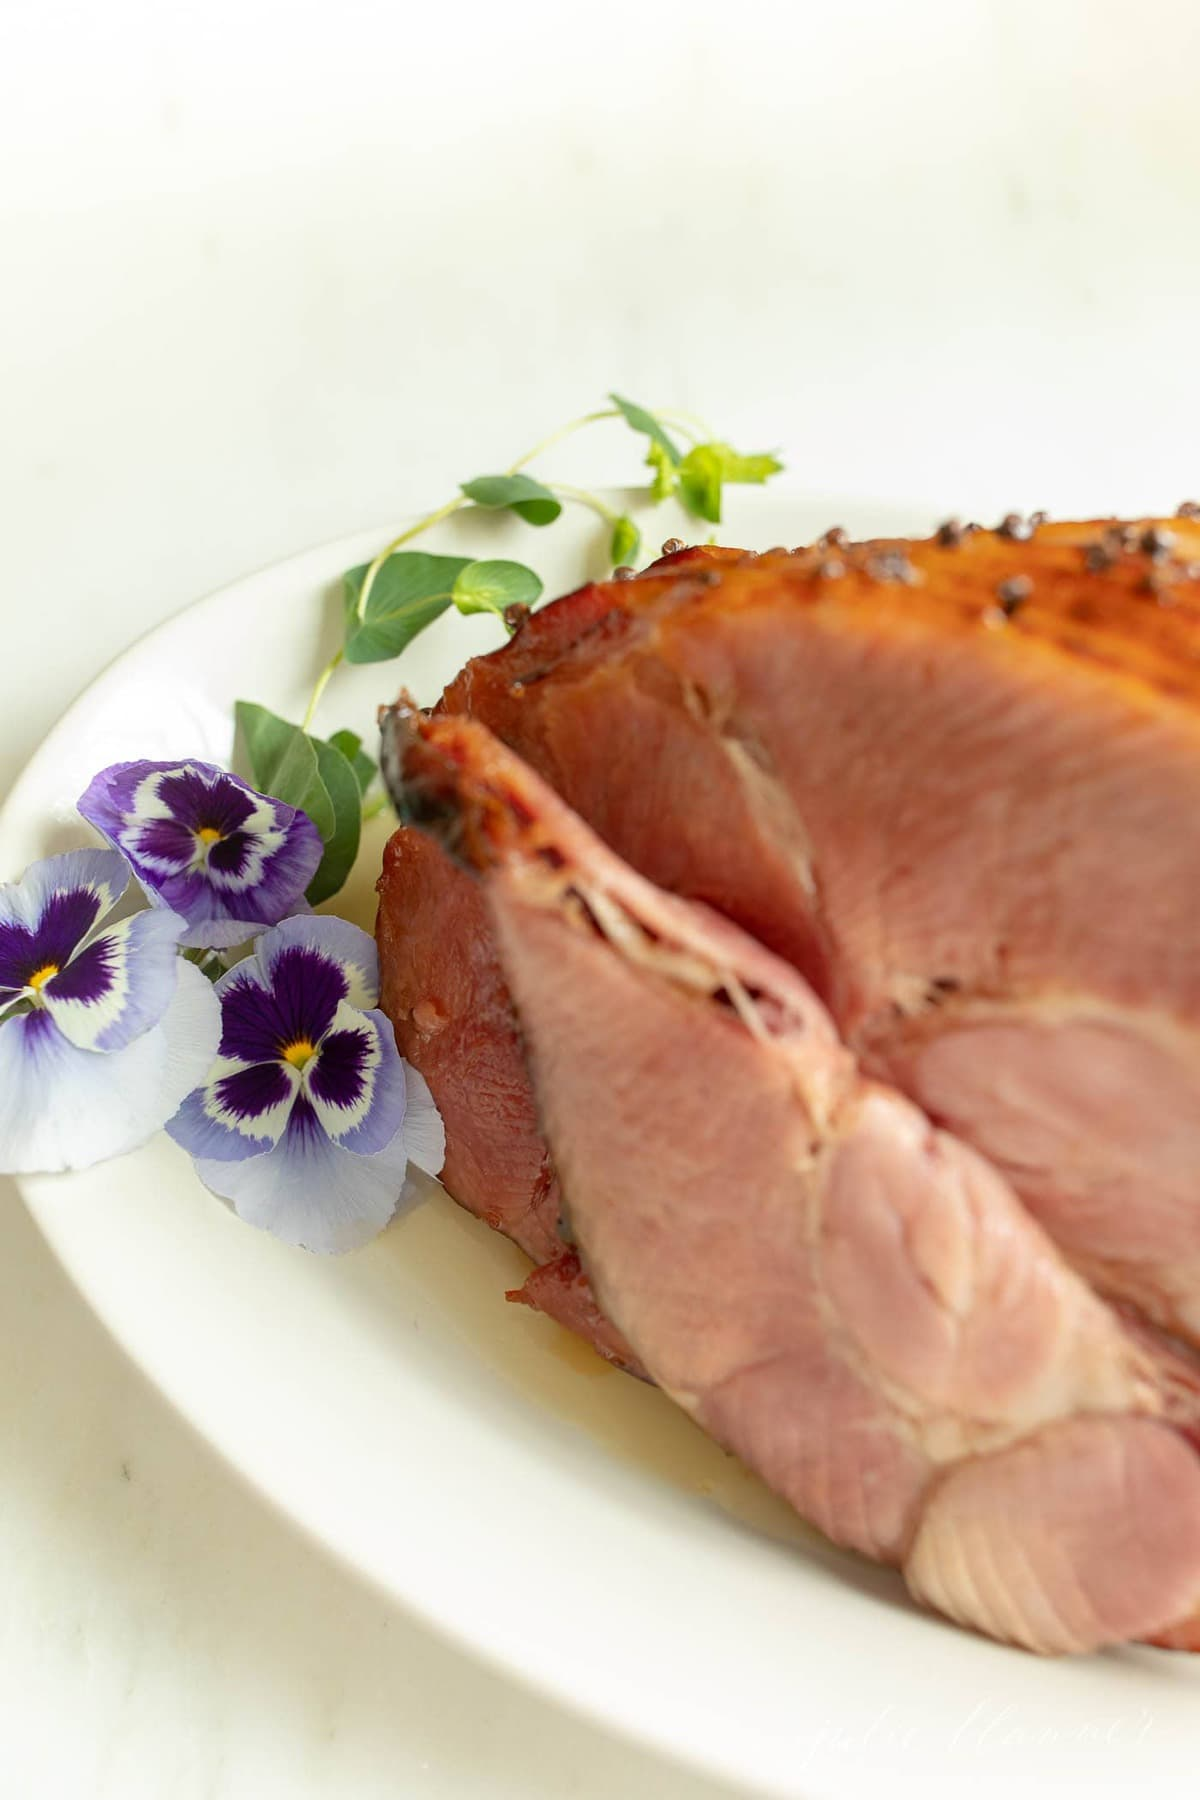 A sliced honey ham on a white platter, garnished with fresh flowers